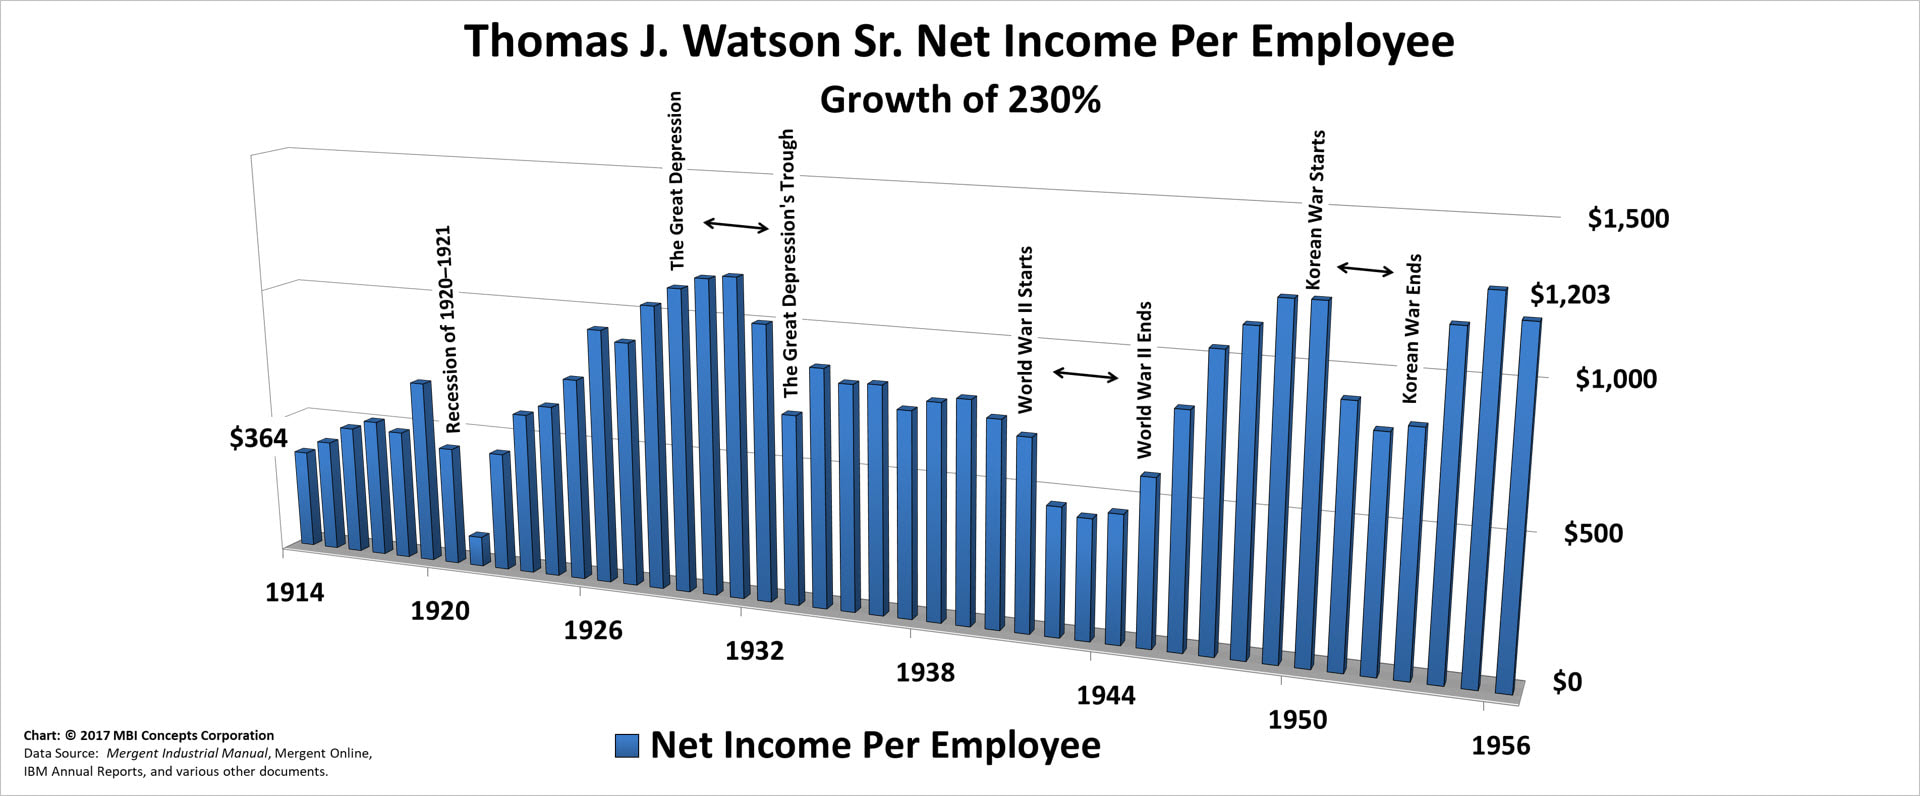 Bar chart of Thomas J. Watson Sr.'s Yearly Net Income per Employee over his 42 years as IBM's CEO from 1914 to 1956